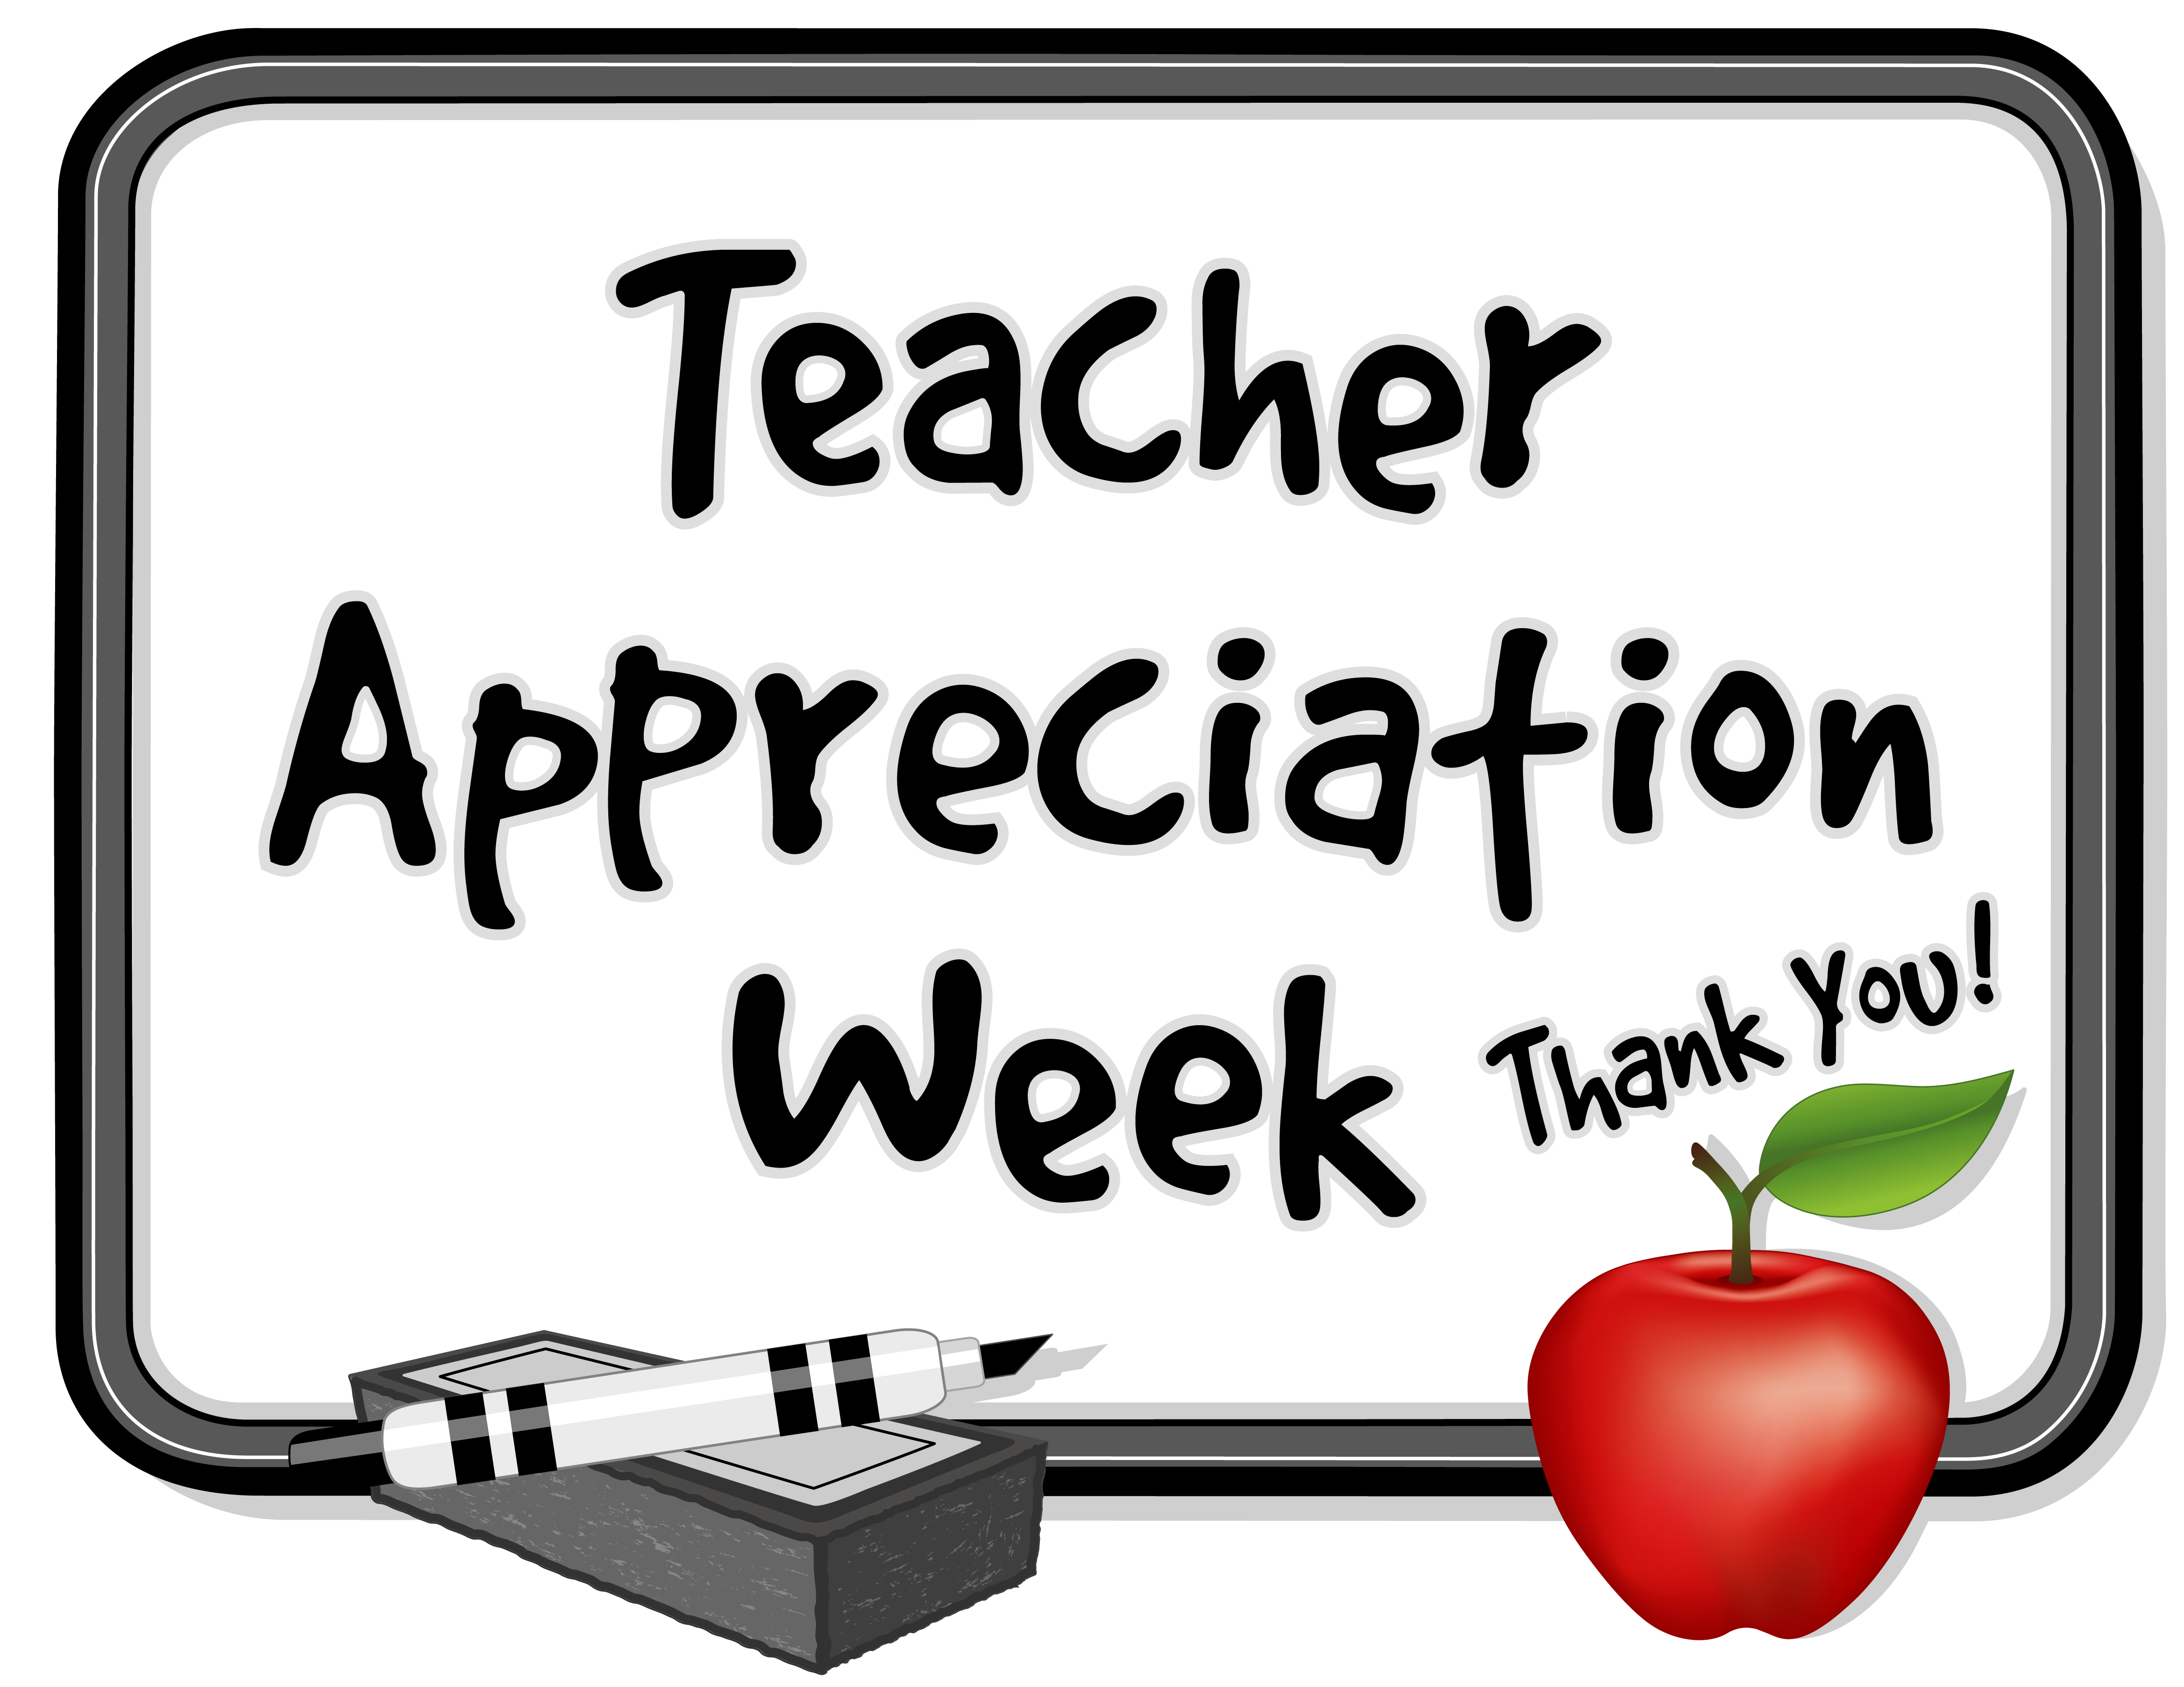 Clipart Teacher Appreciation Week.